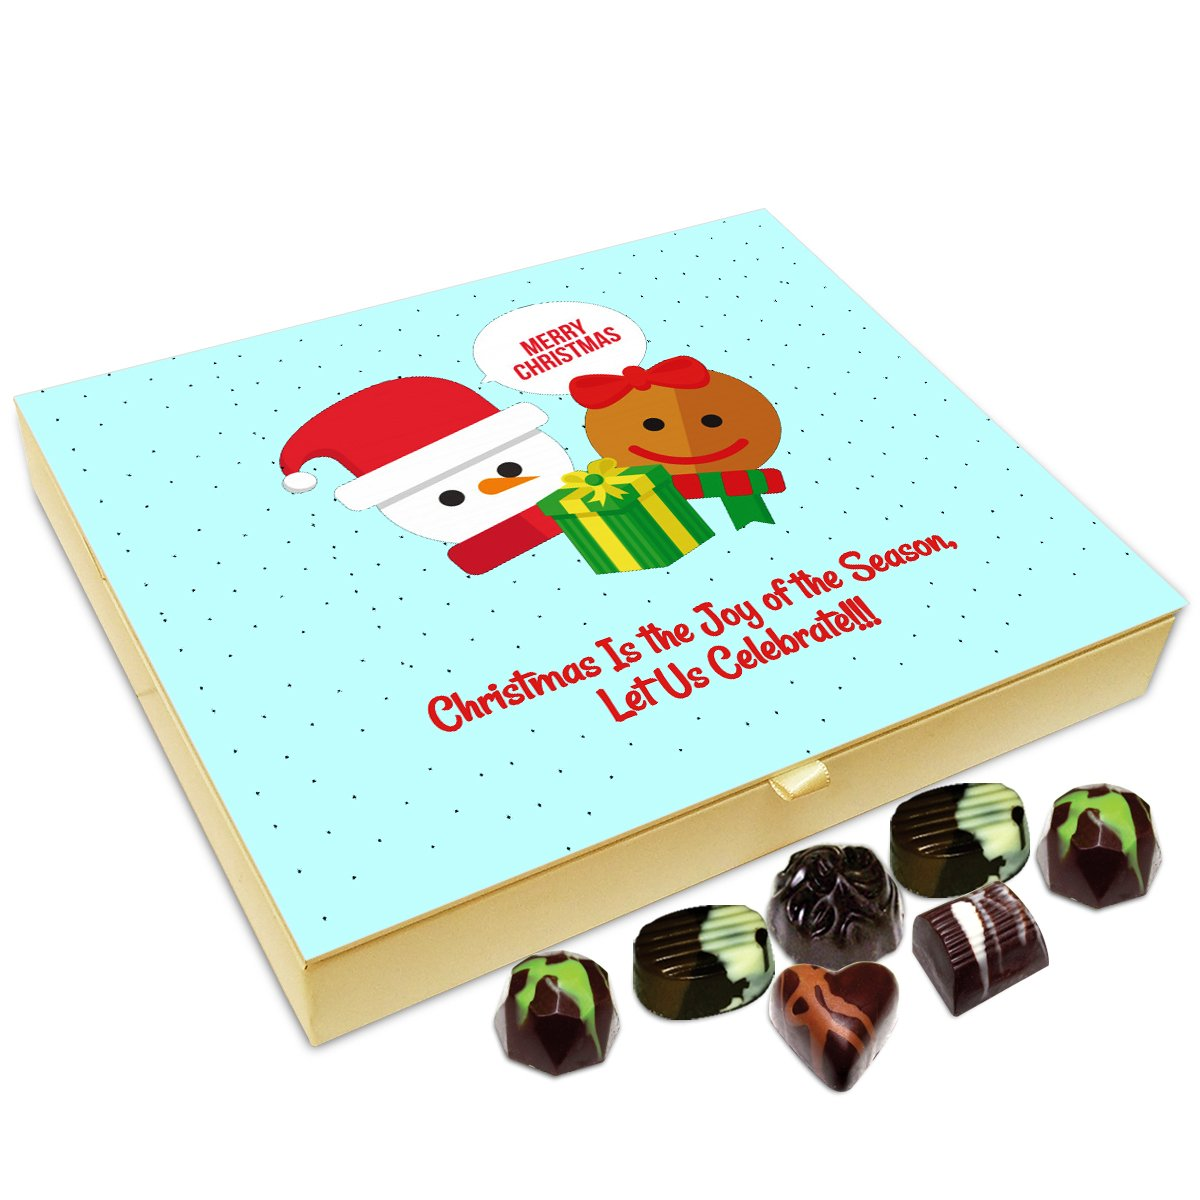 Chocholik Christmas Gift Box – Let Us Celebrate Christmas The Joy of The Season Chocolate Box – 20pc